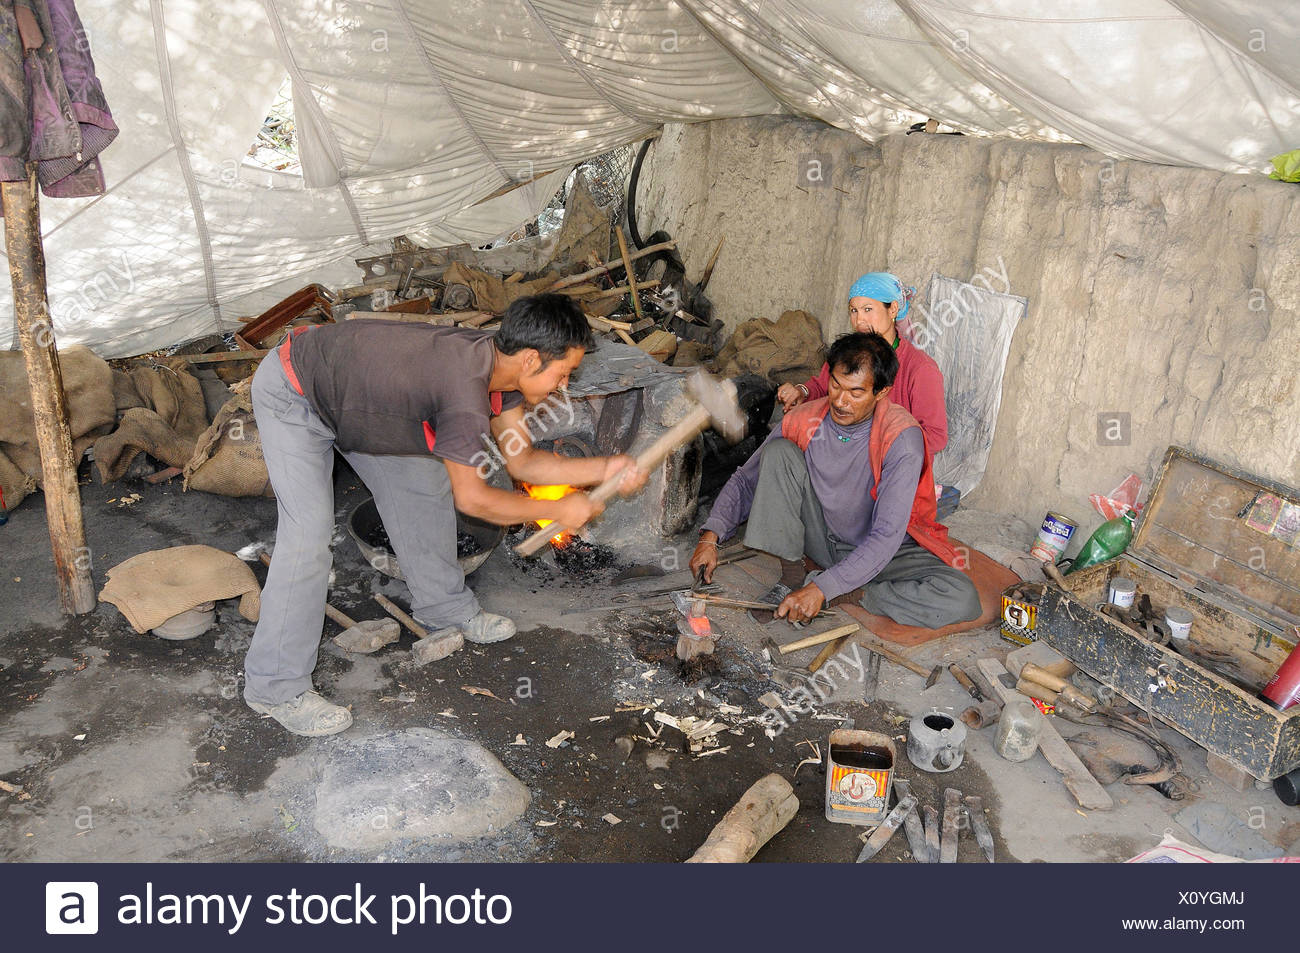 Blacksmith with his wife and assistant manufacturing sickles for the grain harvest in a tent, Shey, Ladakh, India, Himalayas, A - Stock Image